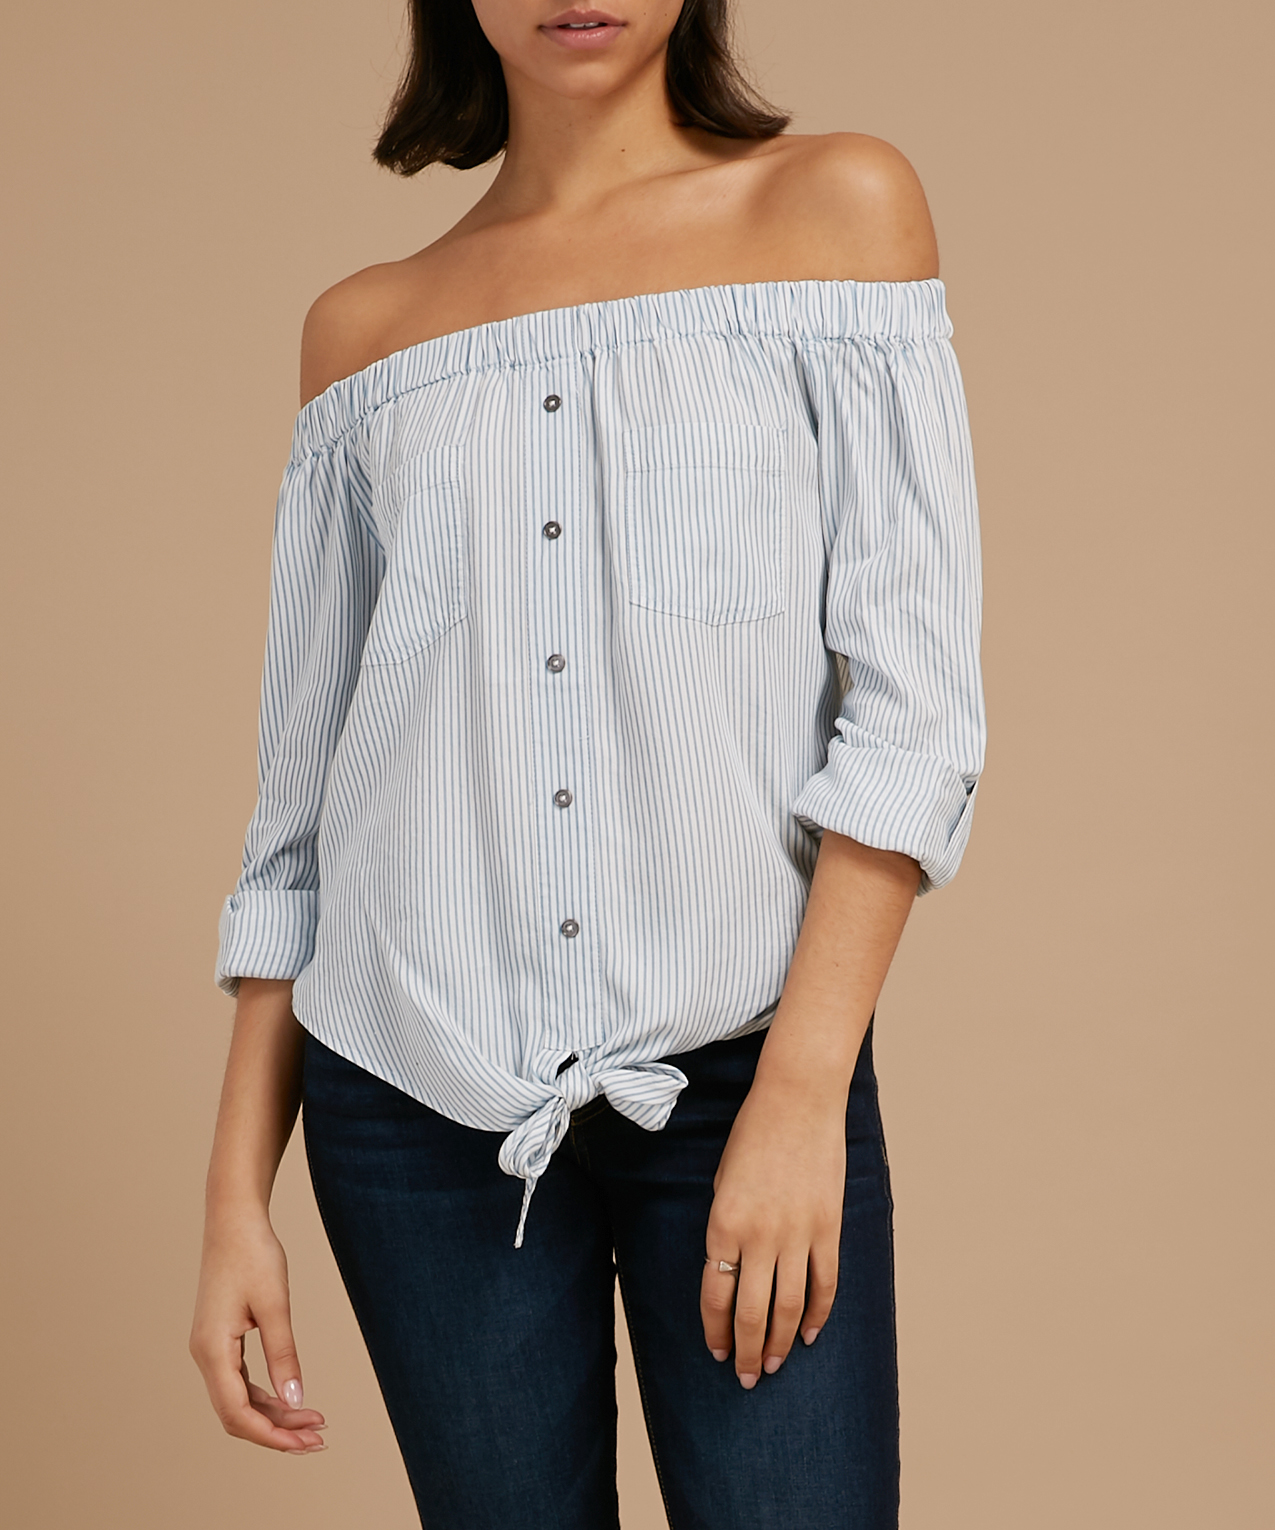 76a559b50b30f striped off the shoulder top - wb